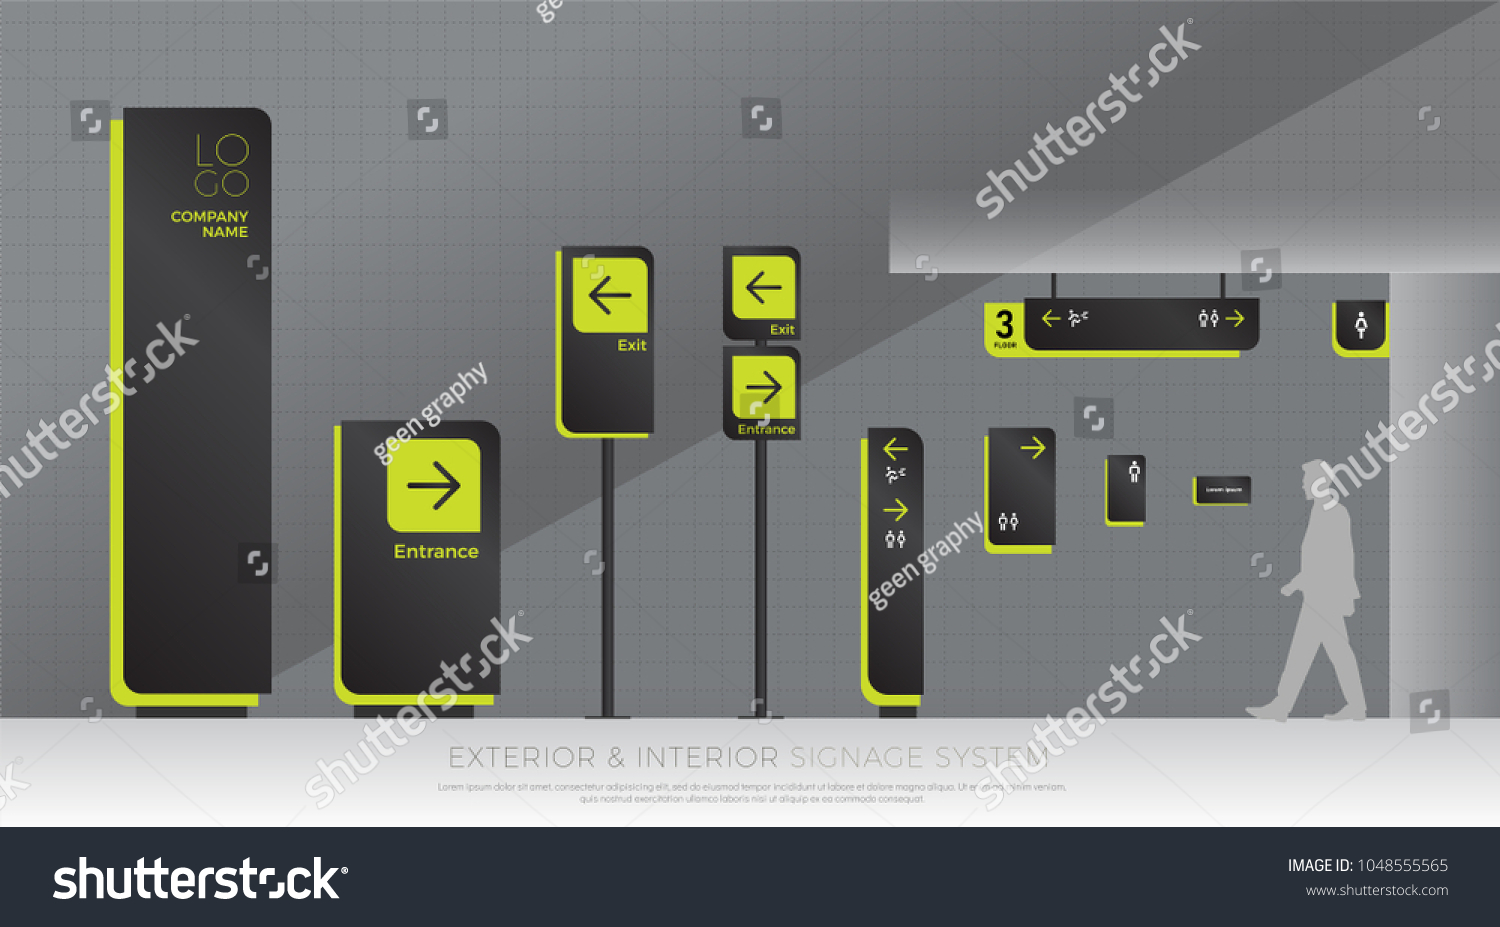 exterior and interior signage system. direction, pole, wall mount and traffic signage system design template set. empty space for logo, text, green and black color corporate identity #1048555565